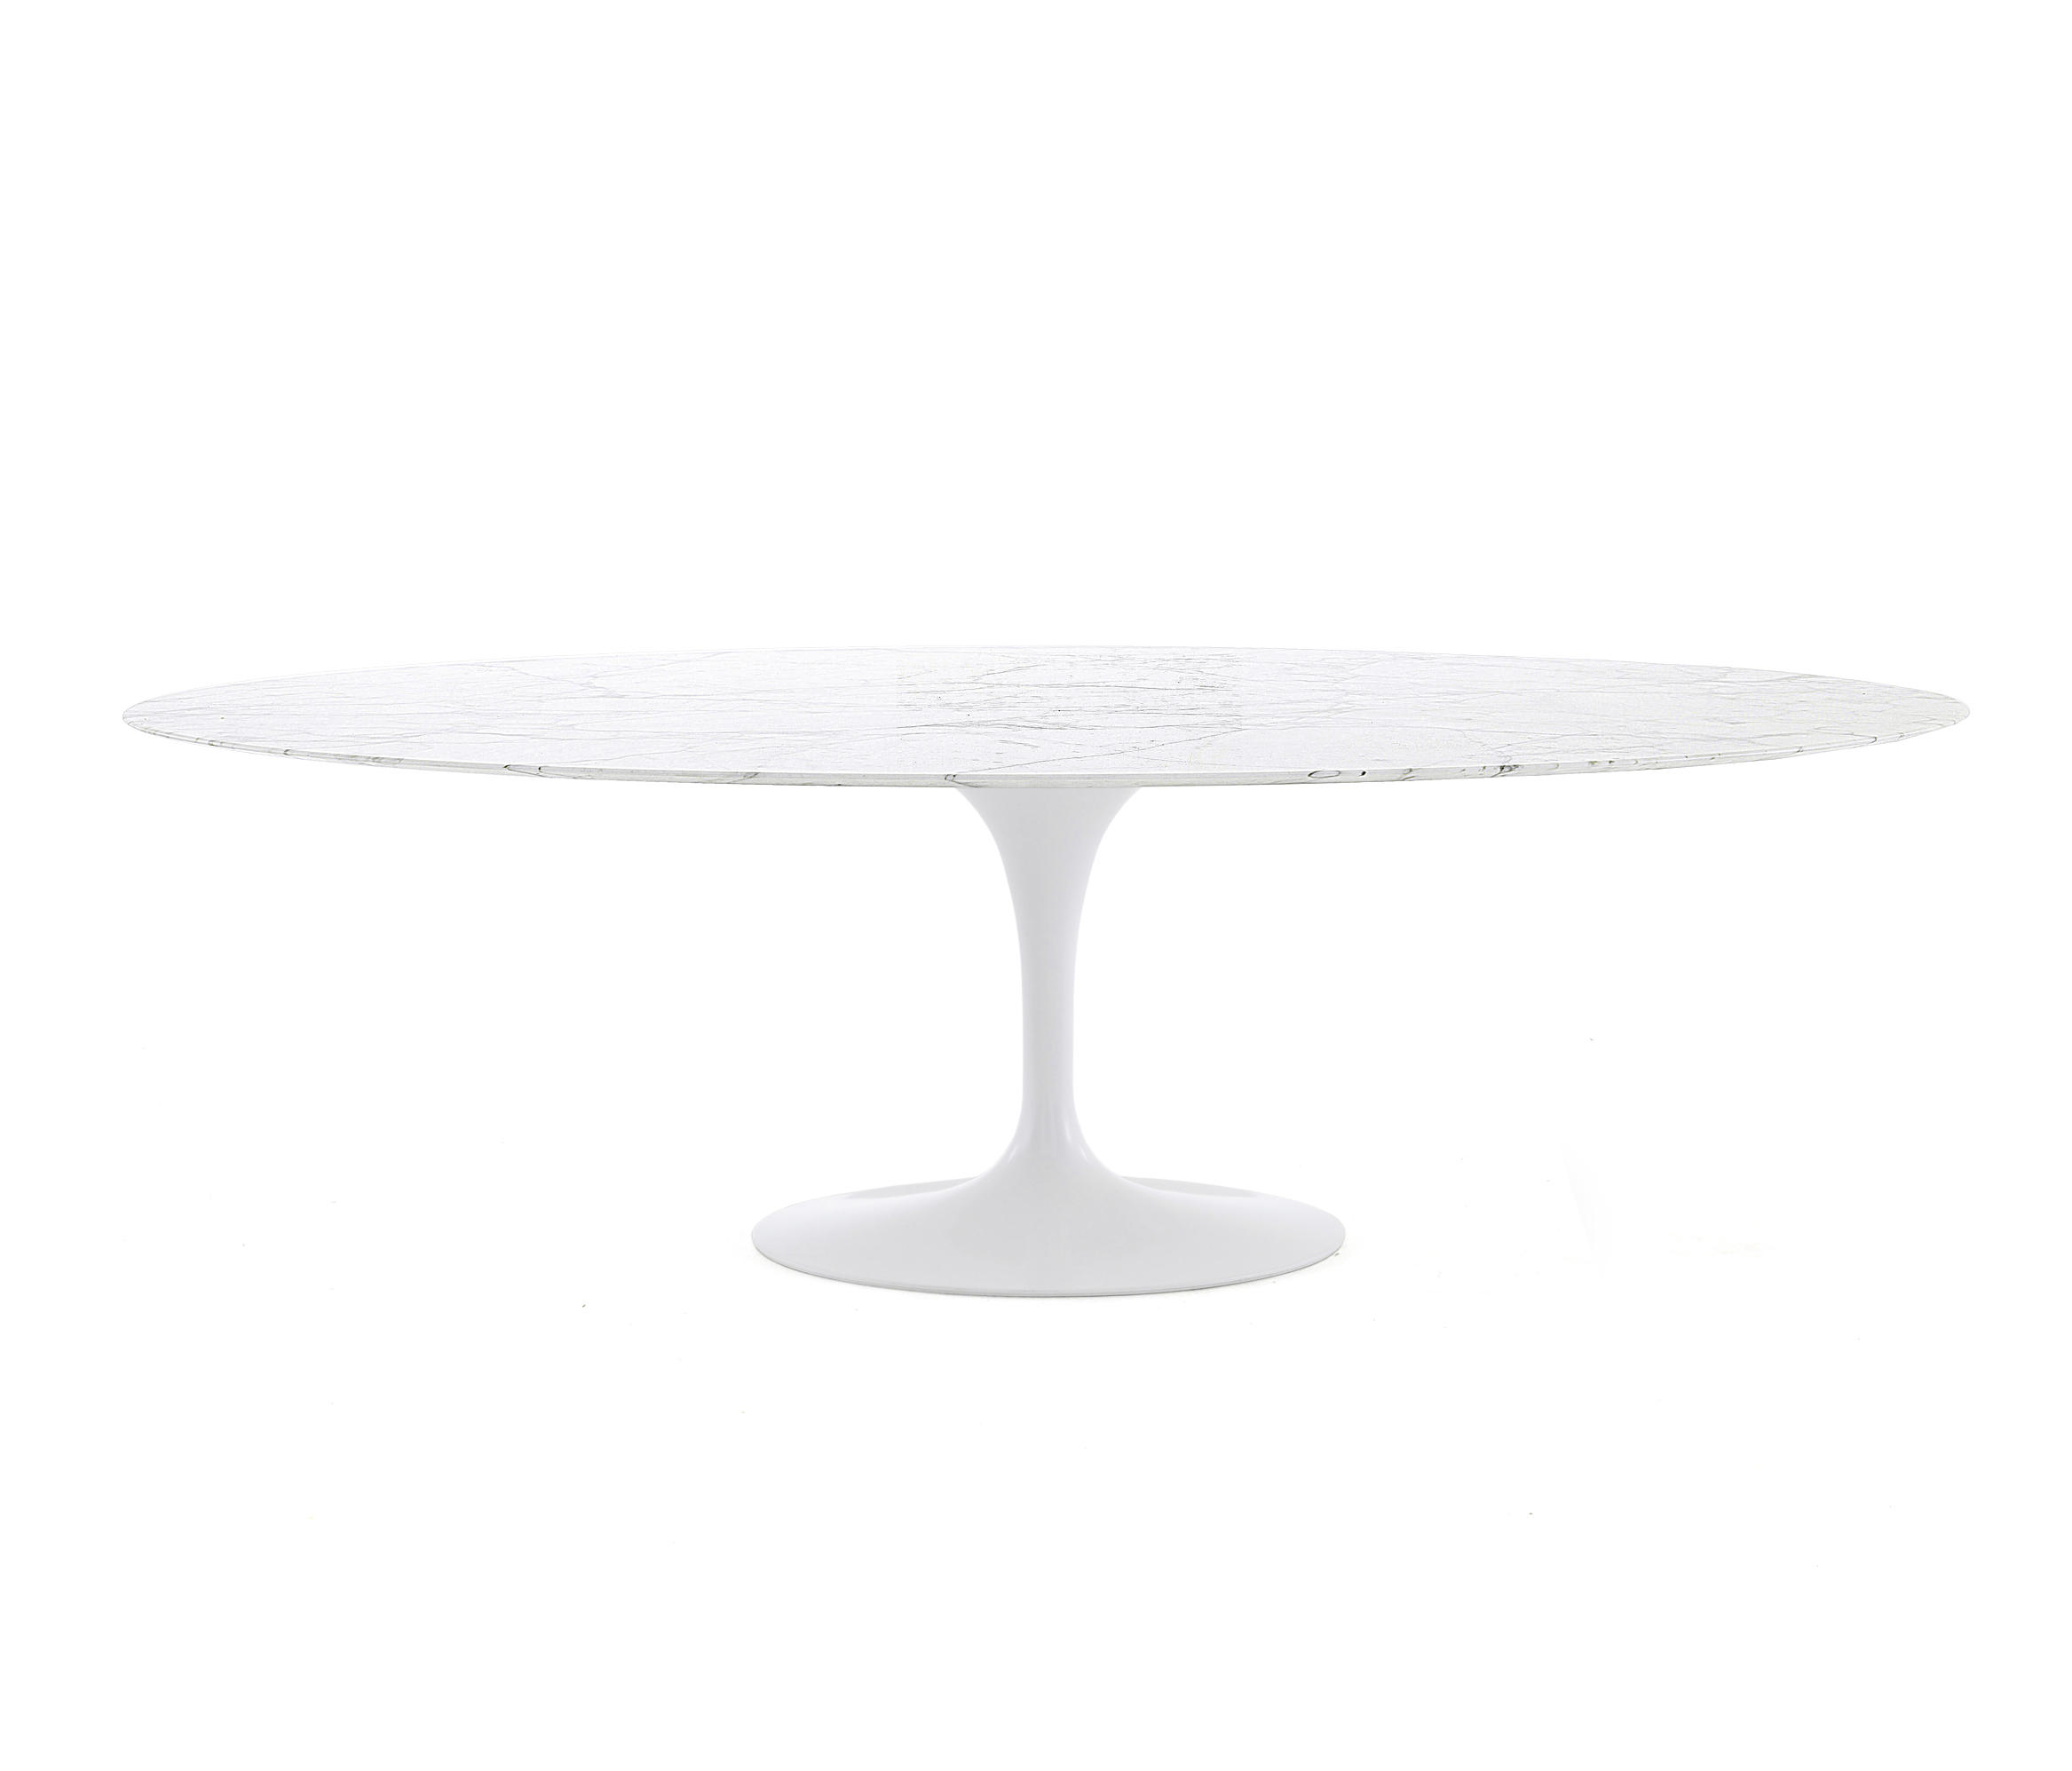 Knoll Saarinen Saarinen Tulip Dining Table Dining Tables From Knoll